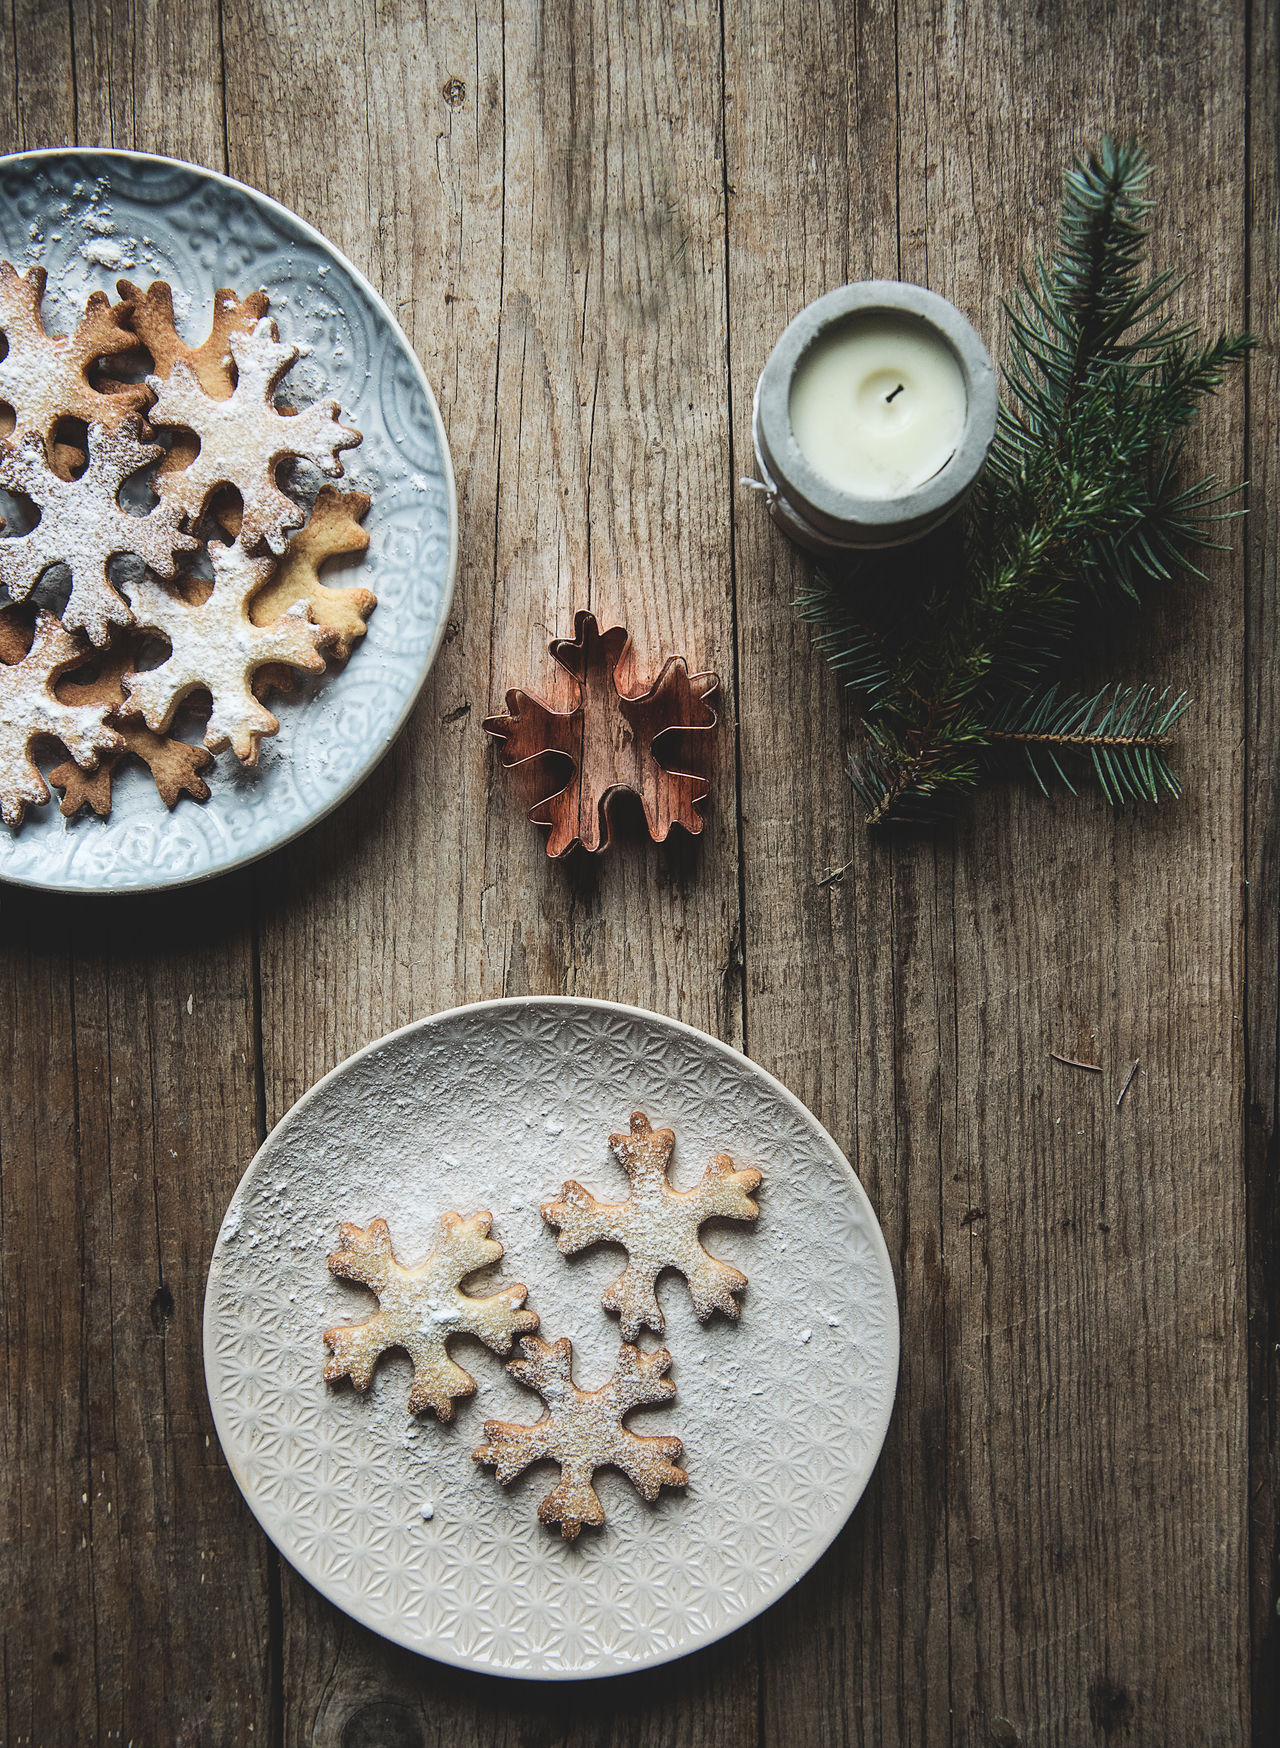 Xmas Cookies Candle Christmas Cookies Directly Above Food High Angle View Indoors  No People Plates Plates On A Table Sweet Food Wood - Material